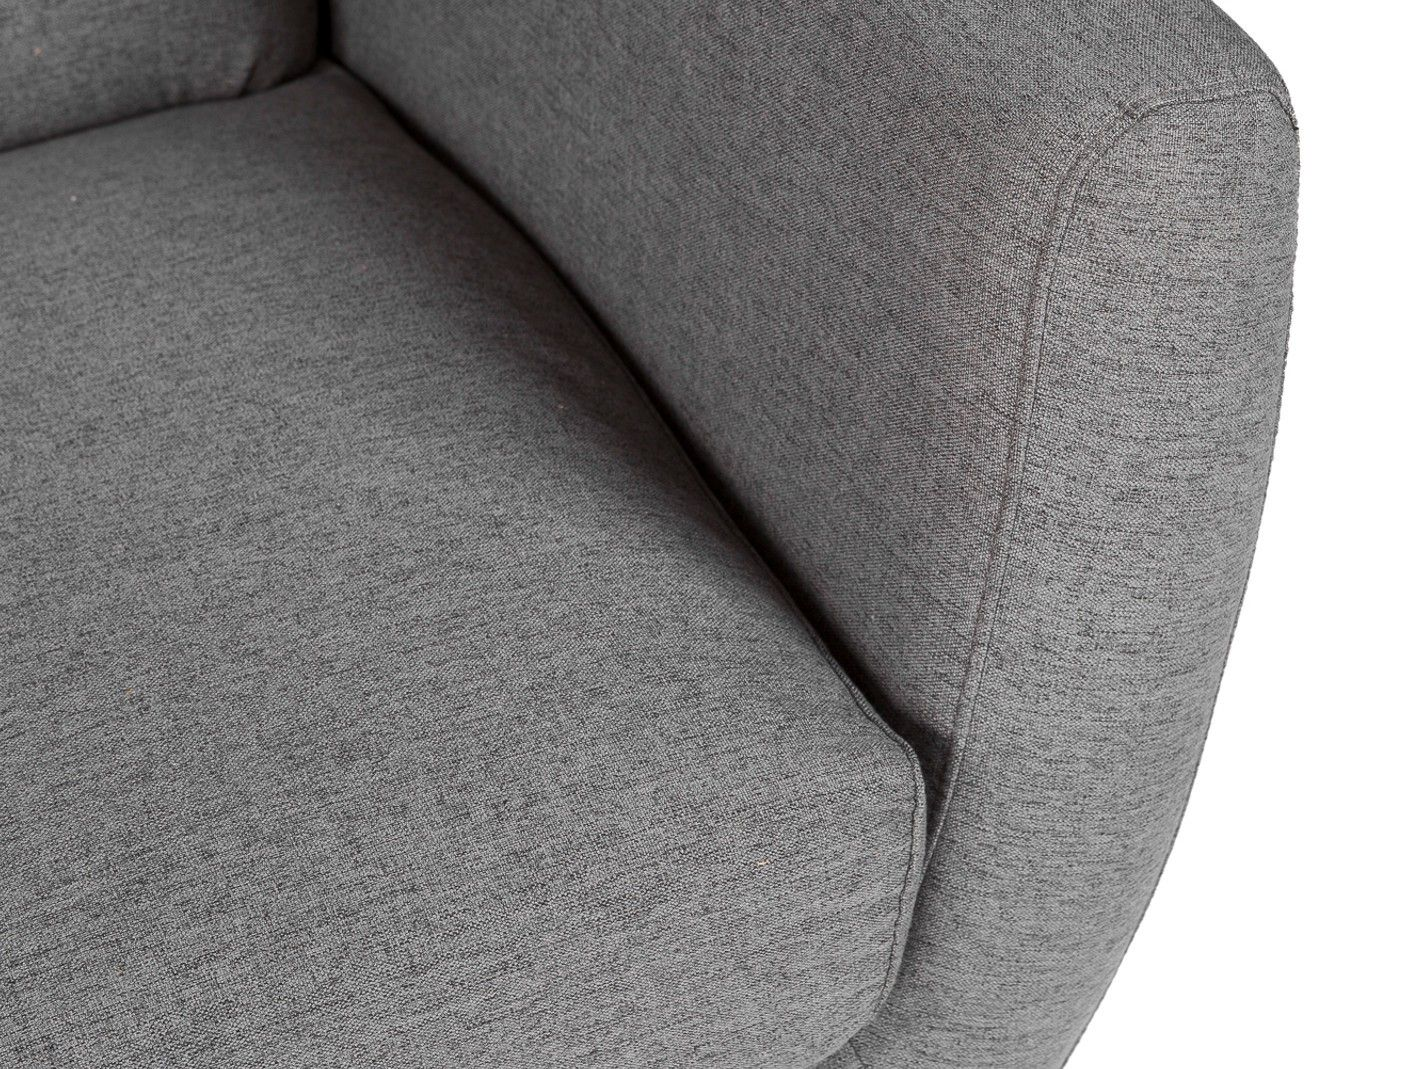 Sof cama apertura italiana venus for Sofa cama merkamueble